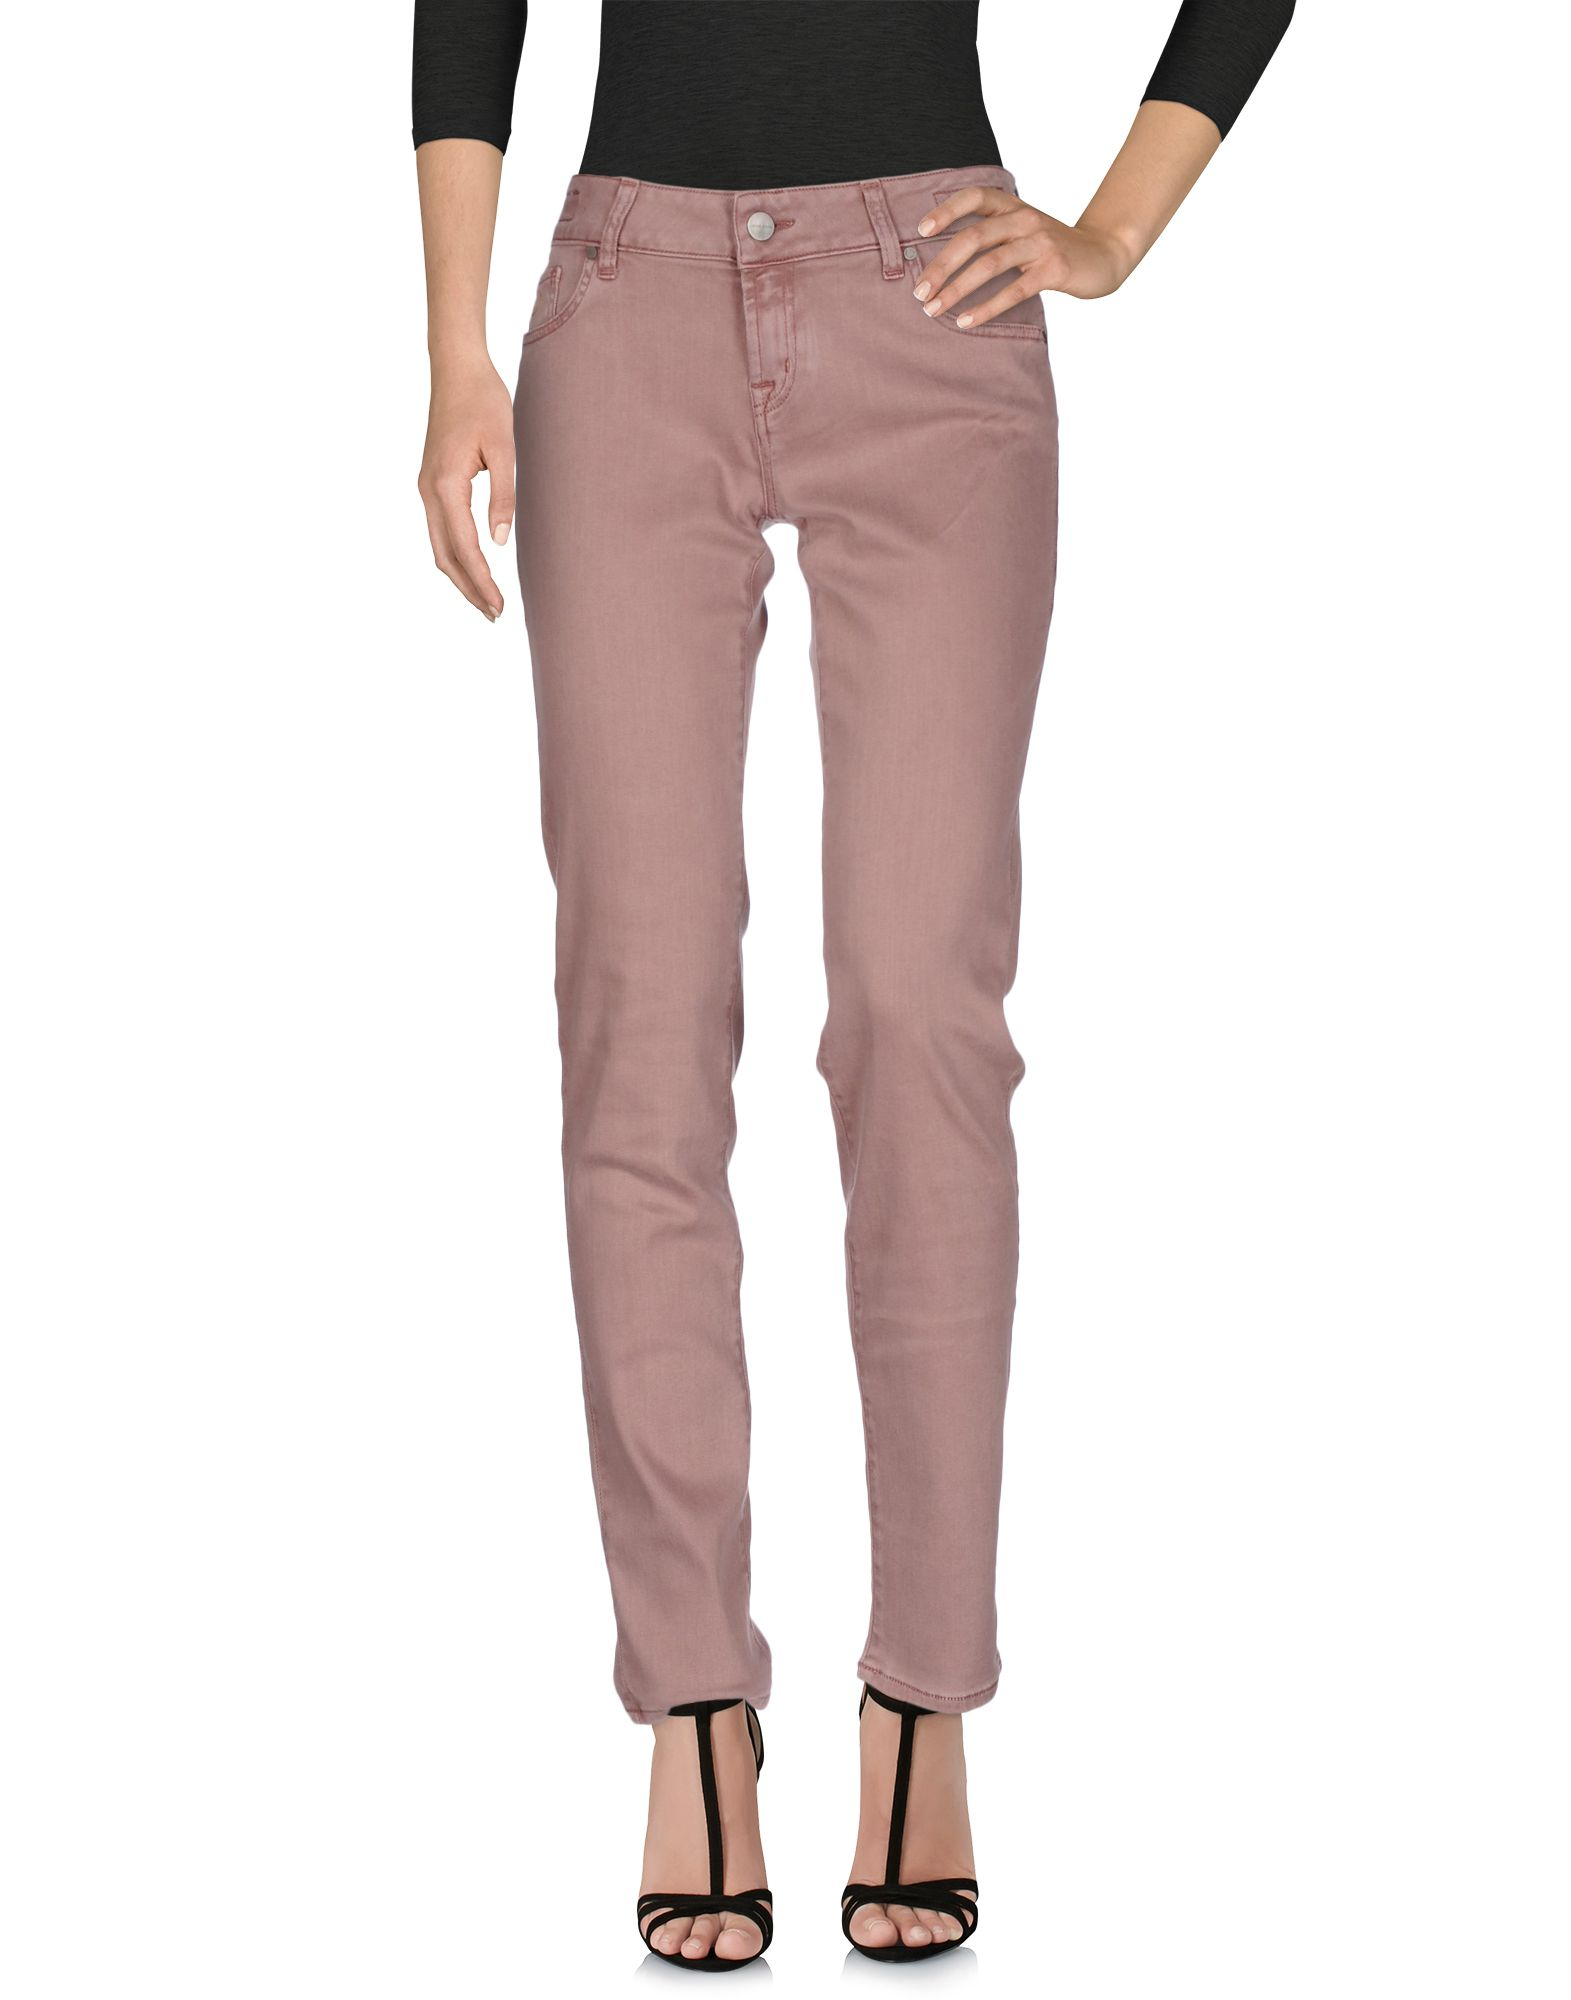 Pantaloni Jeans Jacob Cohёn Donna - Acquista online su KwYk2oPd